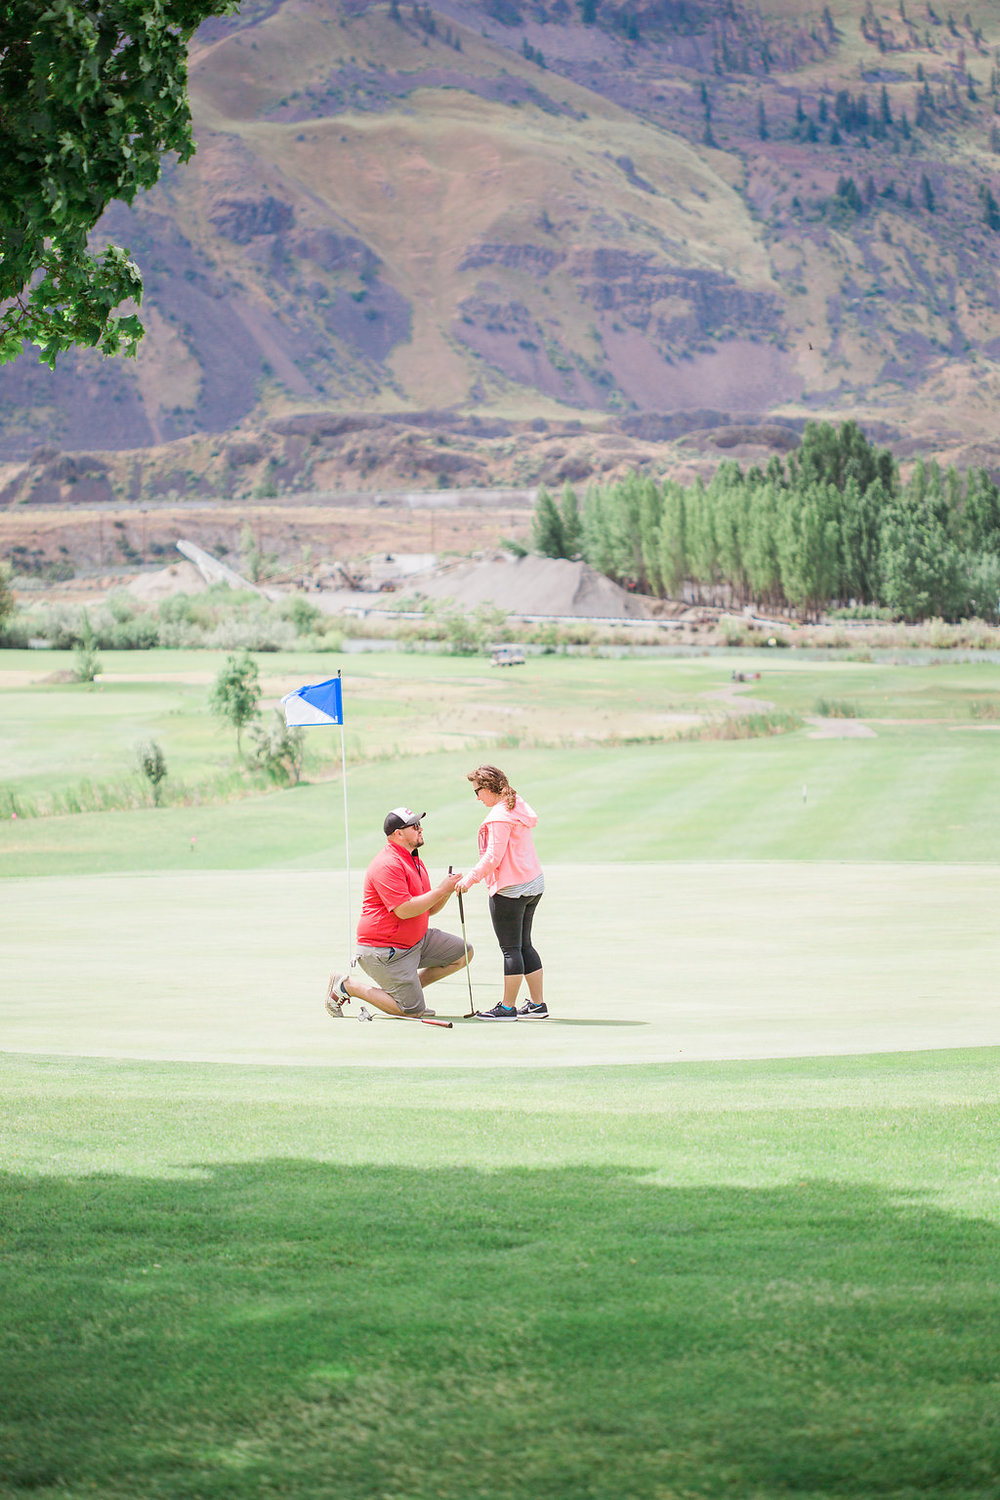 Golf Course Proposal | 9th Hole Proposal | Golf Course Photo Session | Beautiful Engagement Session | Seattle Wedding Photographer | Surprise Proposal